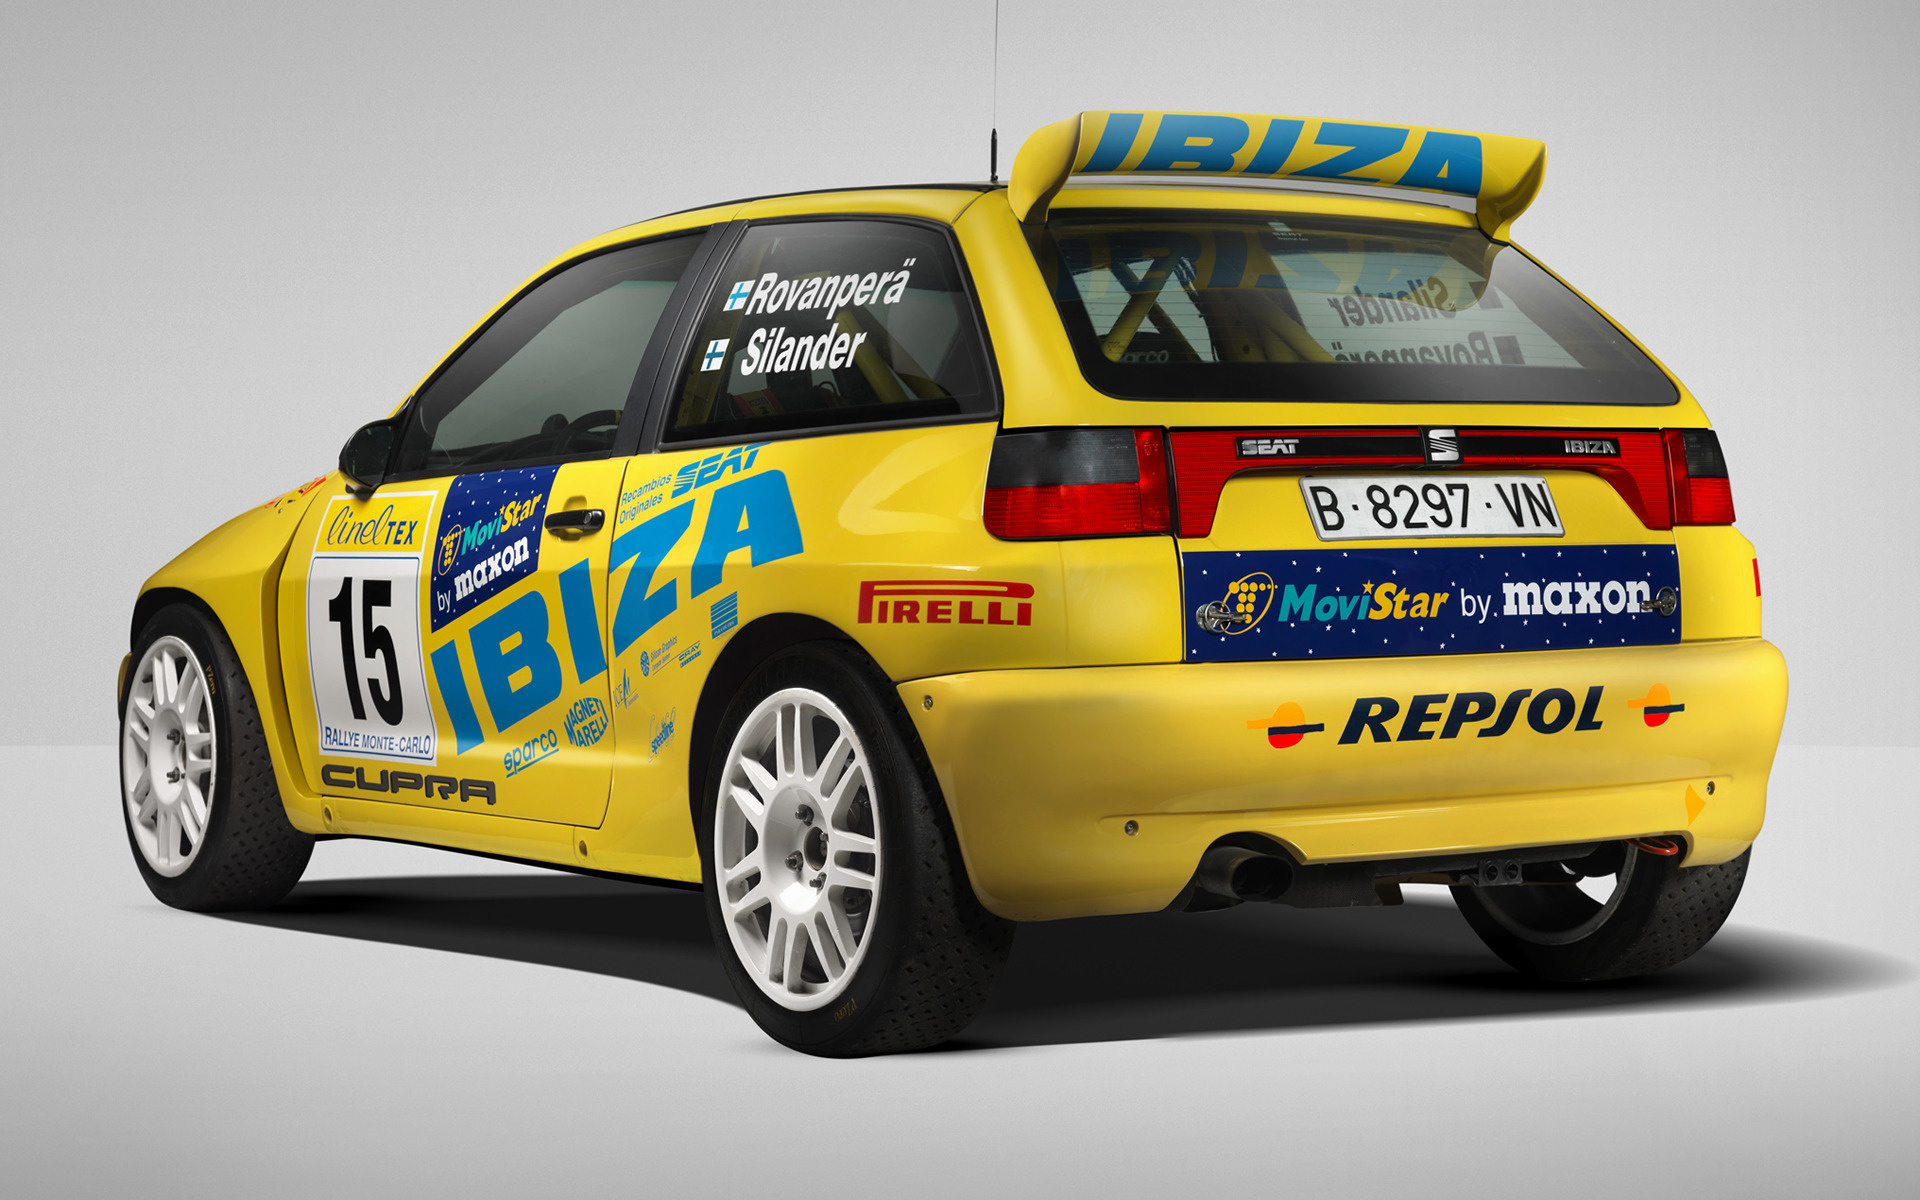 Seat Ibiza Kit Car Evo 1995 Wallpapers And Hd Images